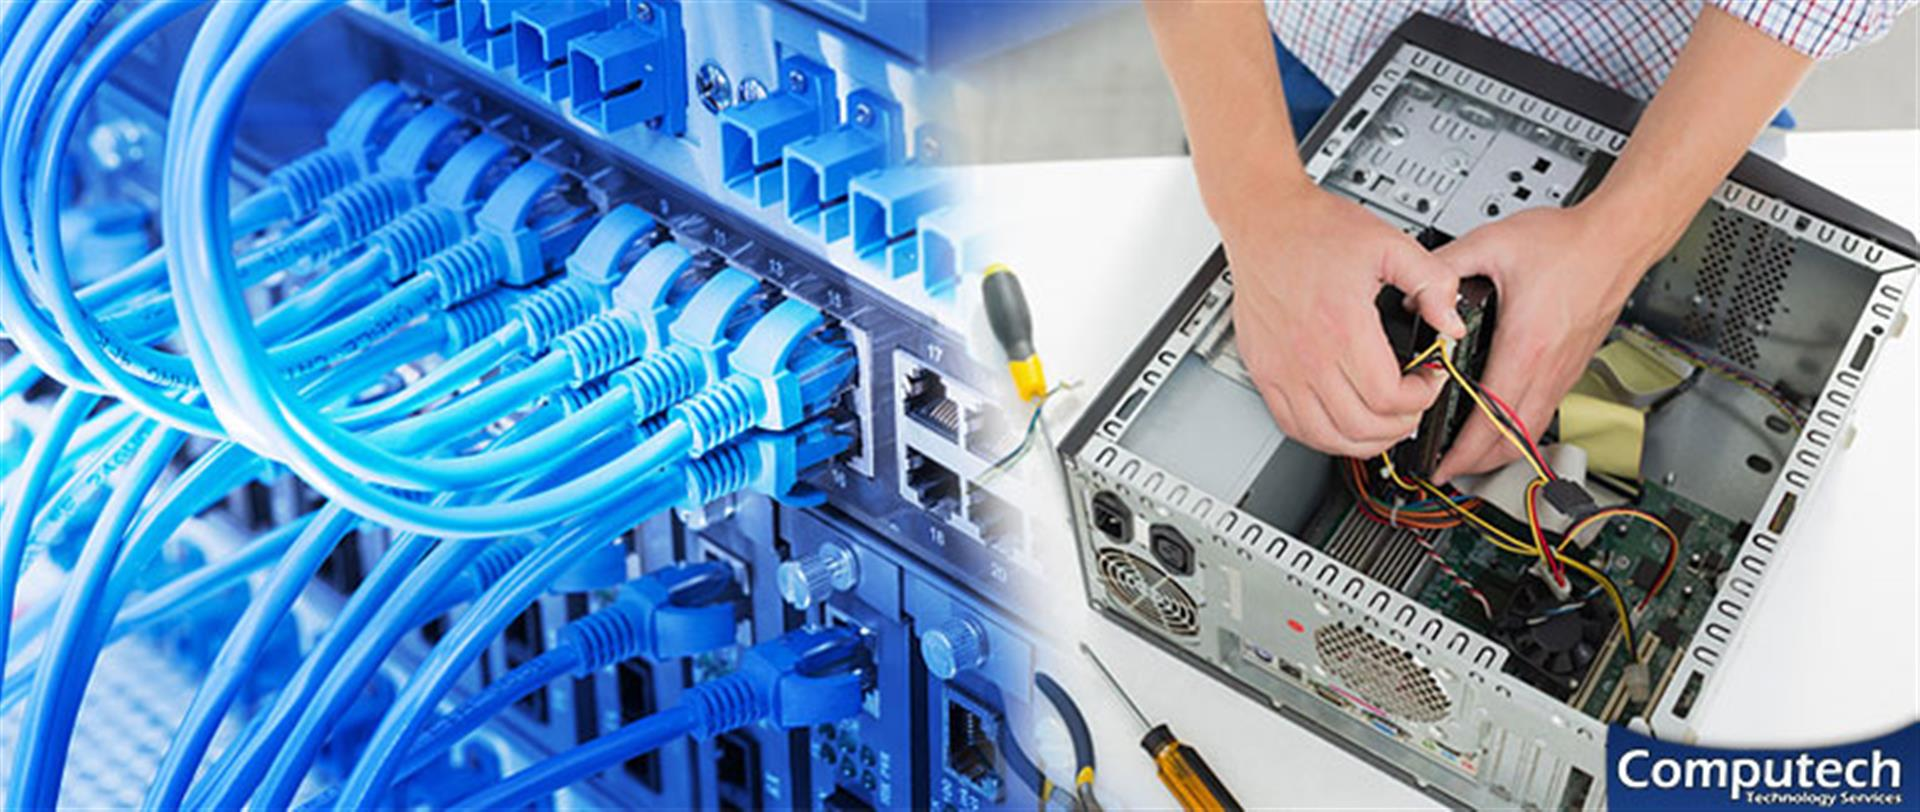 Hartselle Alabama Onsite PC & Printer Repair, Networking, Telecom & Data Low Voltage Cabling Services